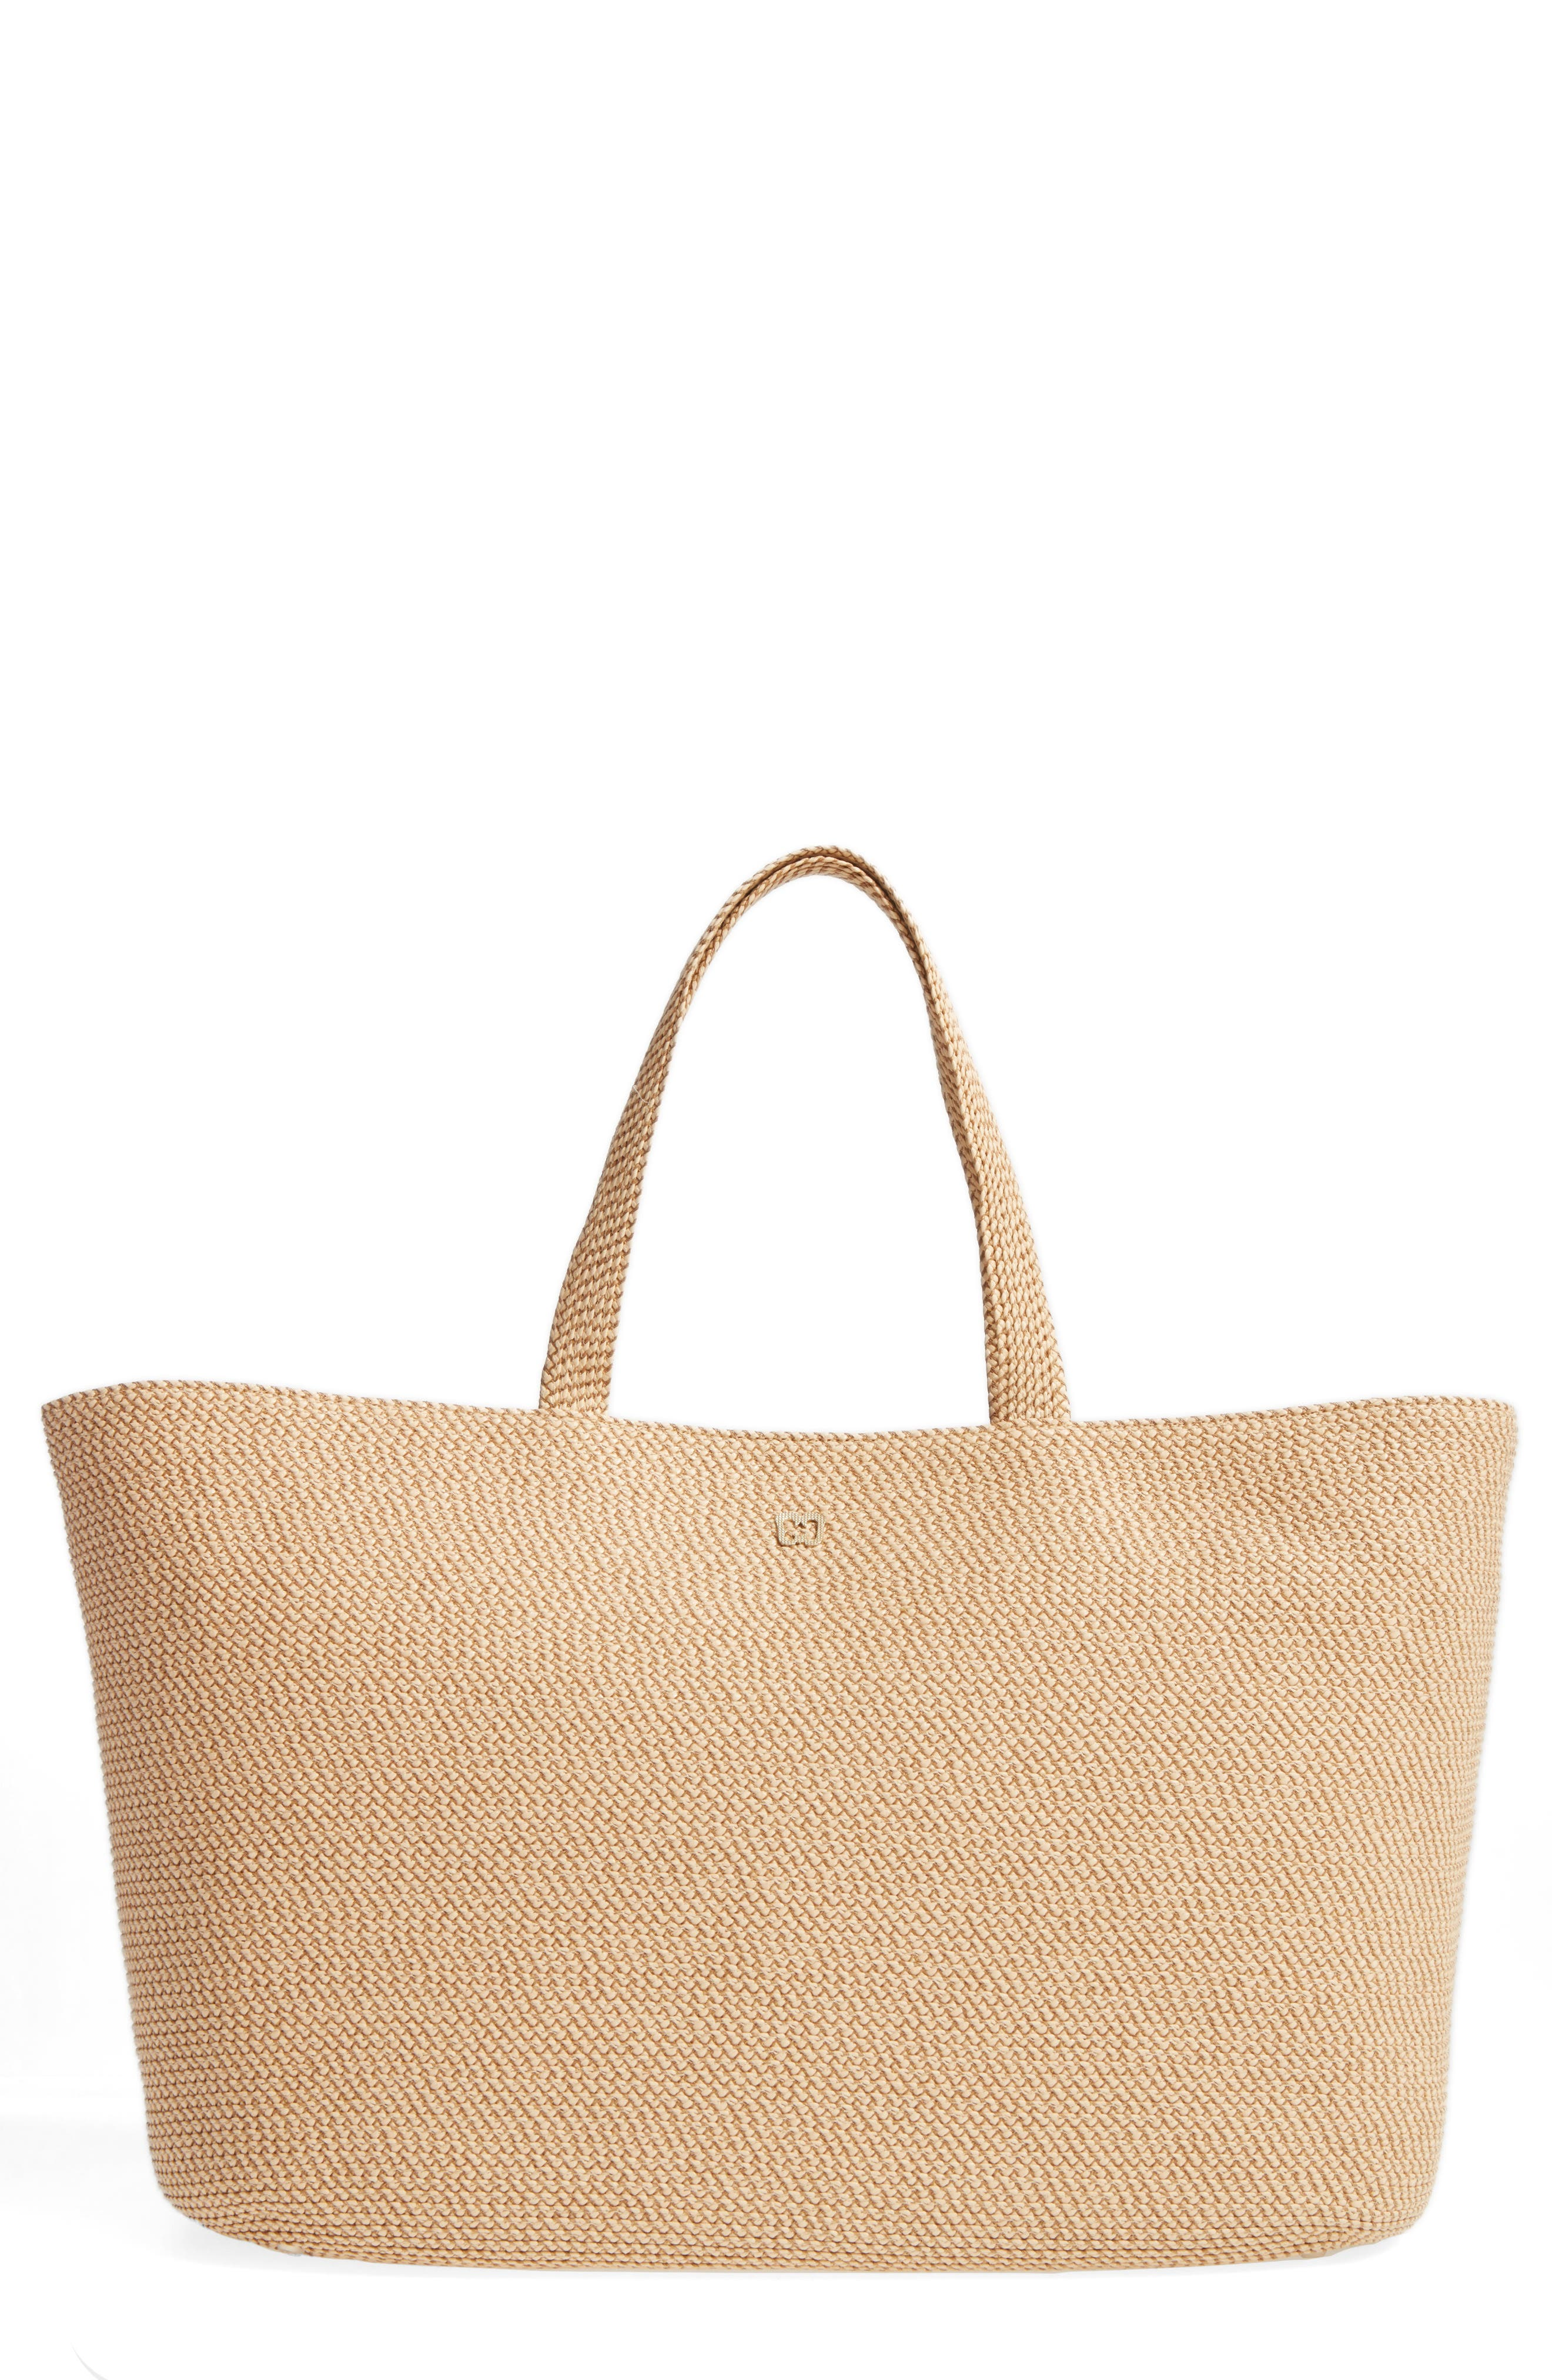 'Sinclair' Squishee<sup>®</sup> Tote,                             Main thumbnail 2, color,